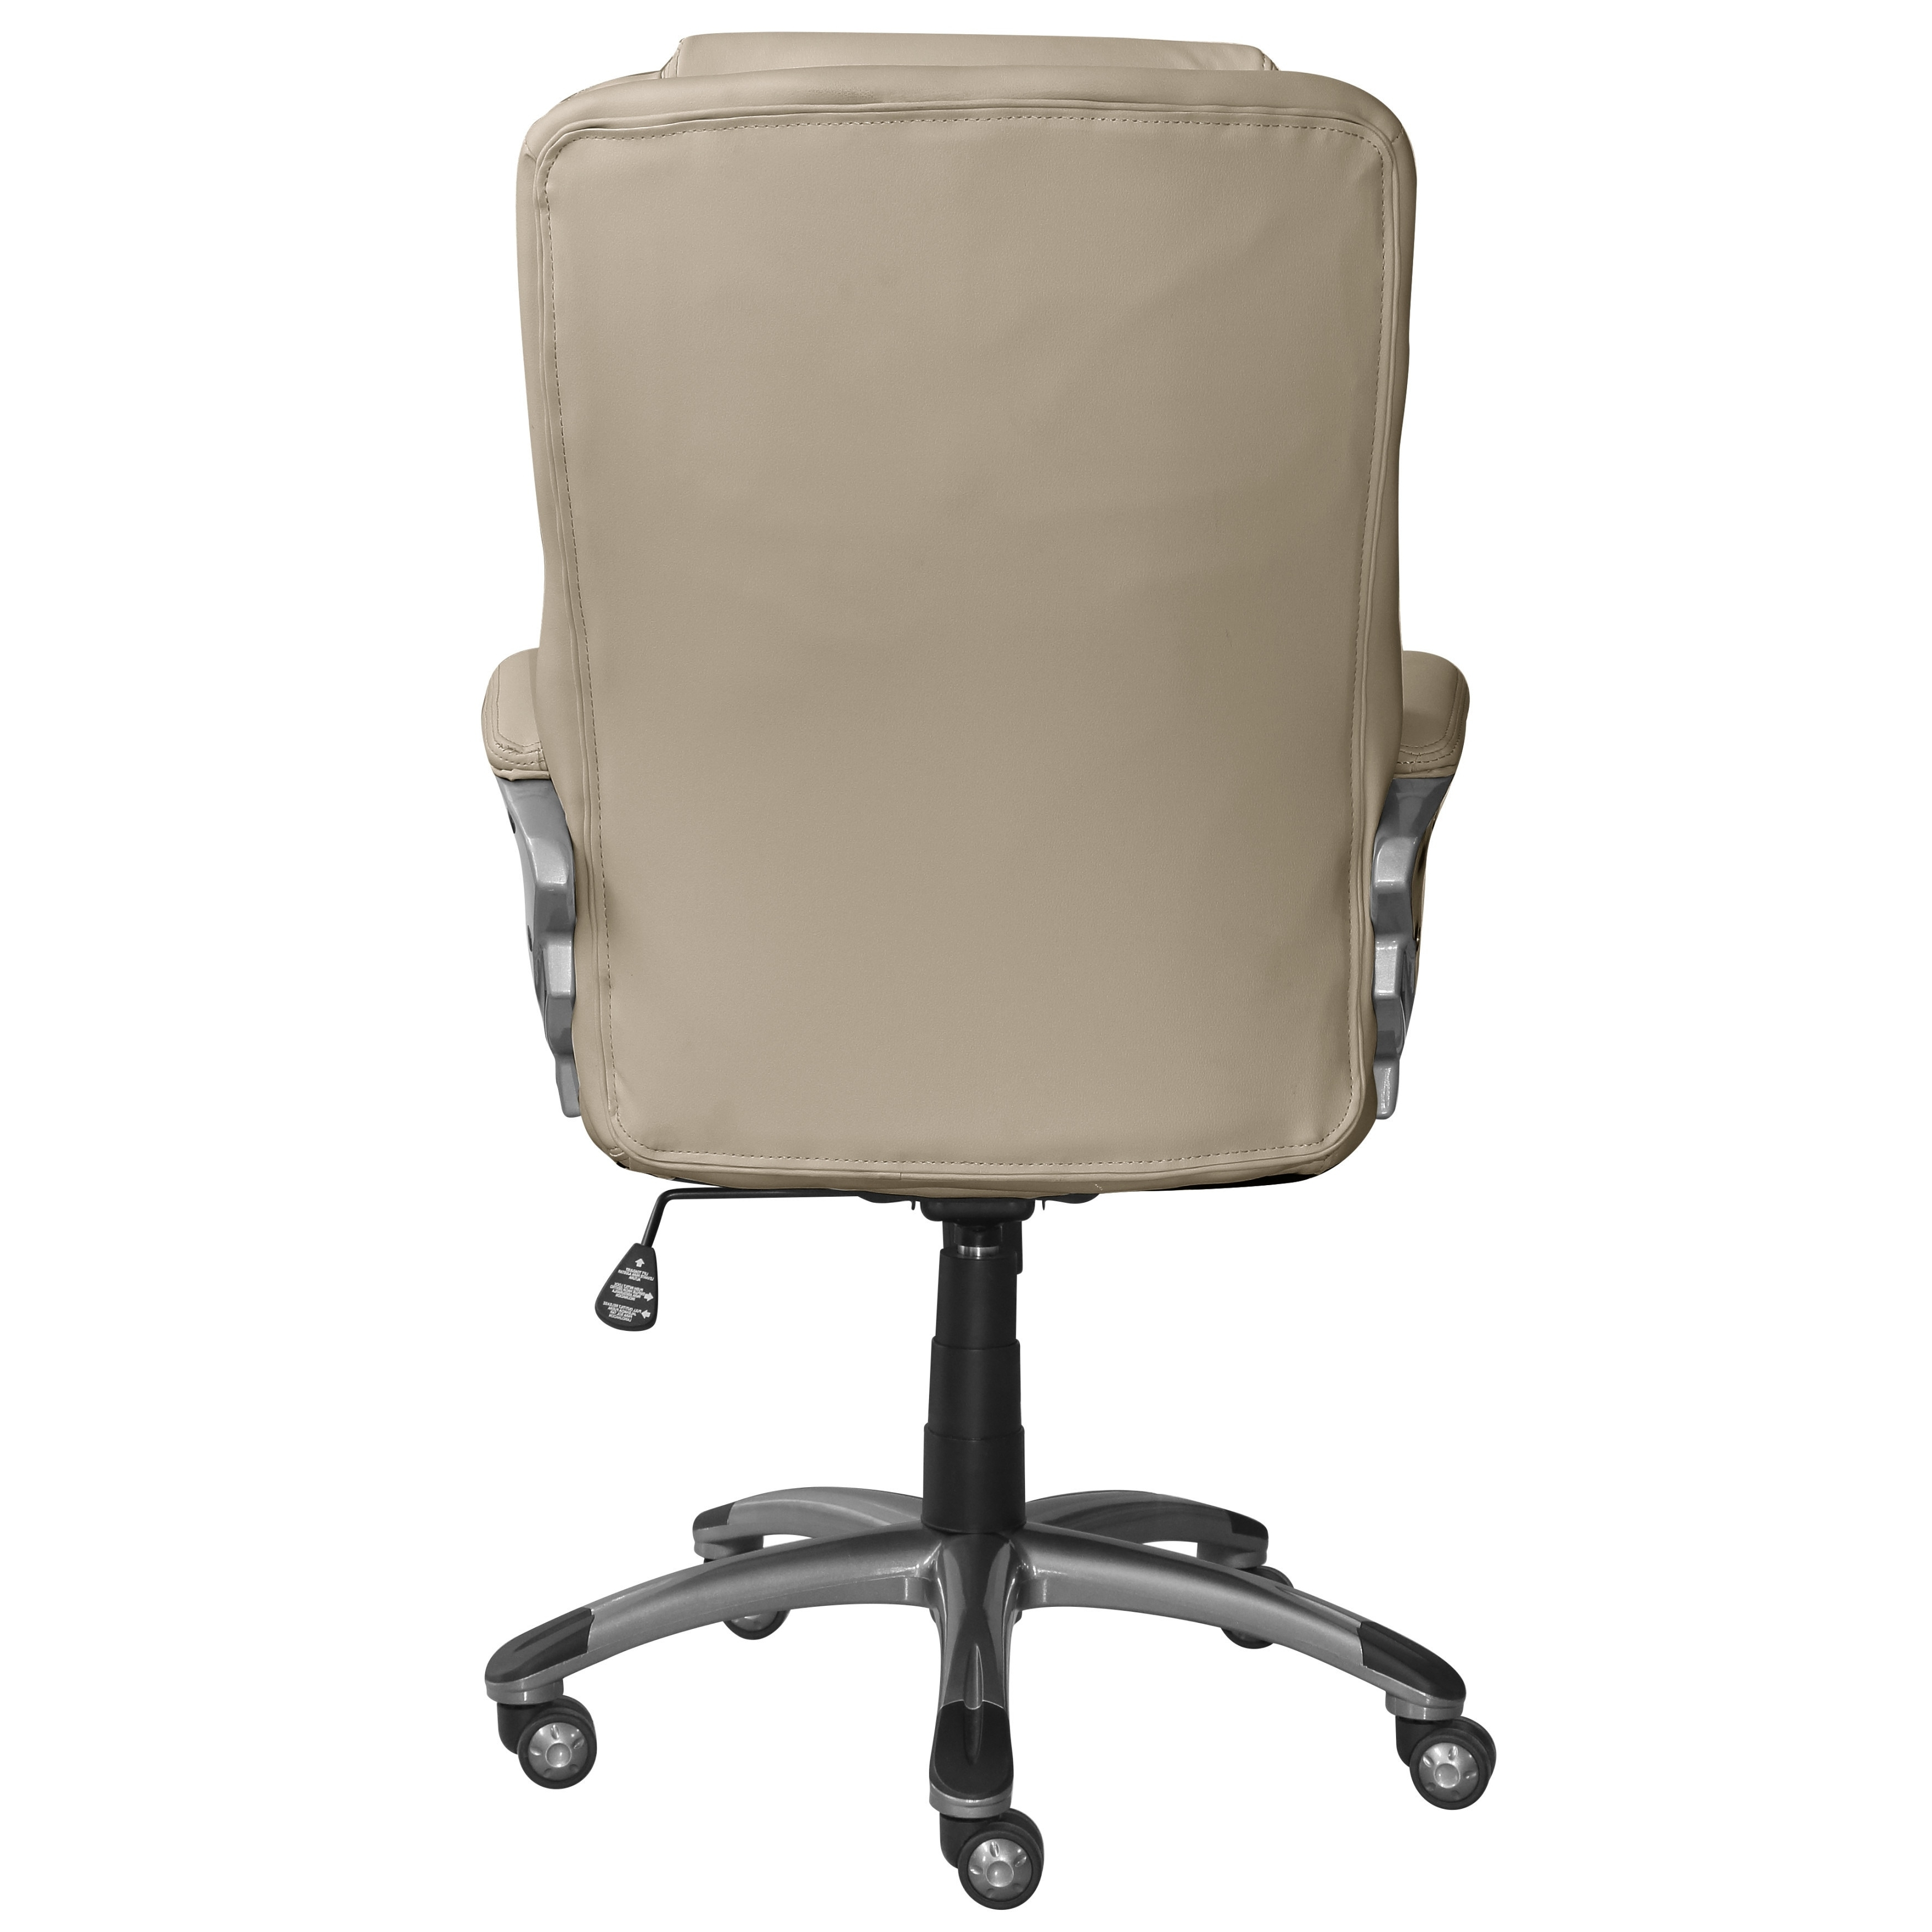 Serta Works Bonded Leather Executive Office Chair – Free Shipping Within Fashionable Light Beige Microfiber Executive Office Chairs (View 6 of 20)